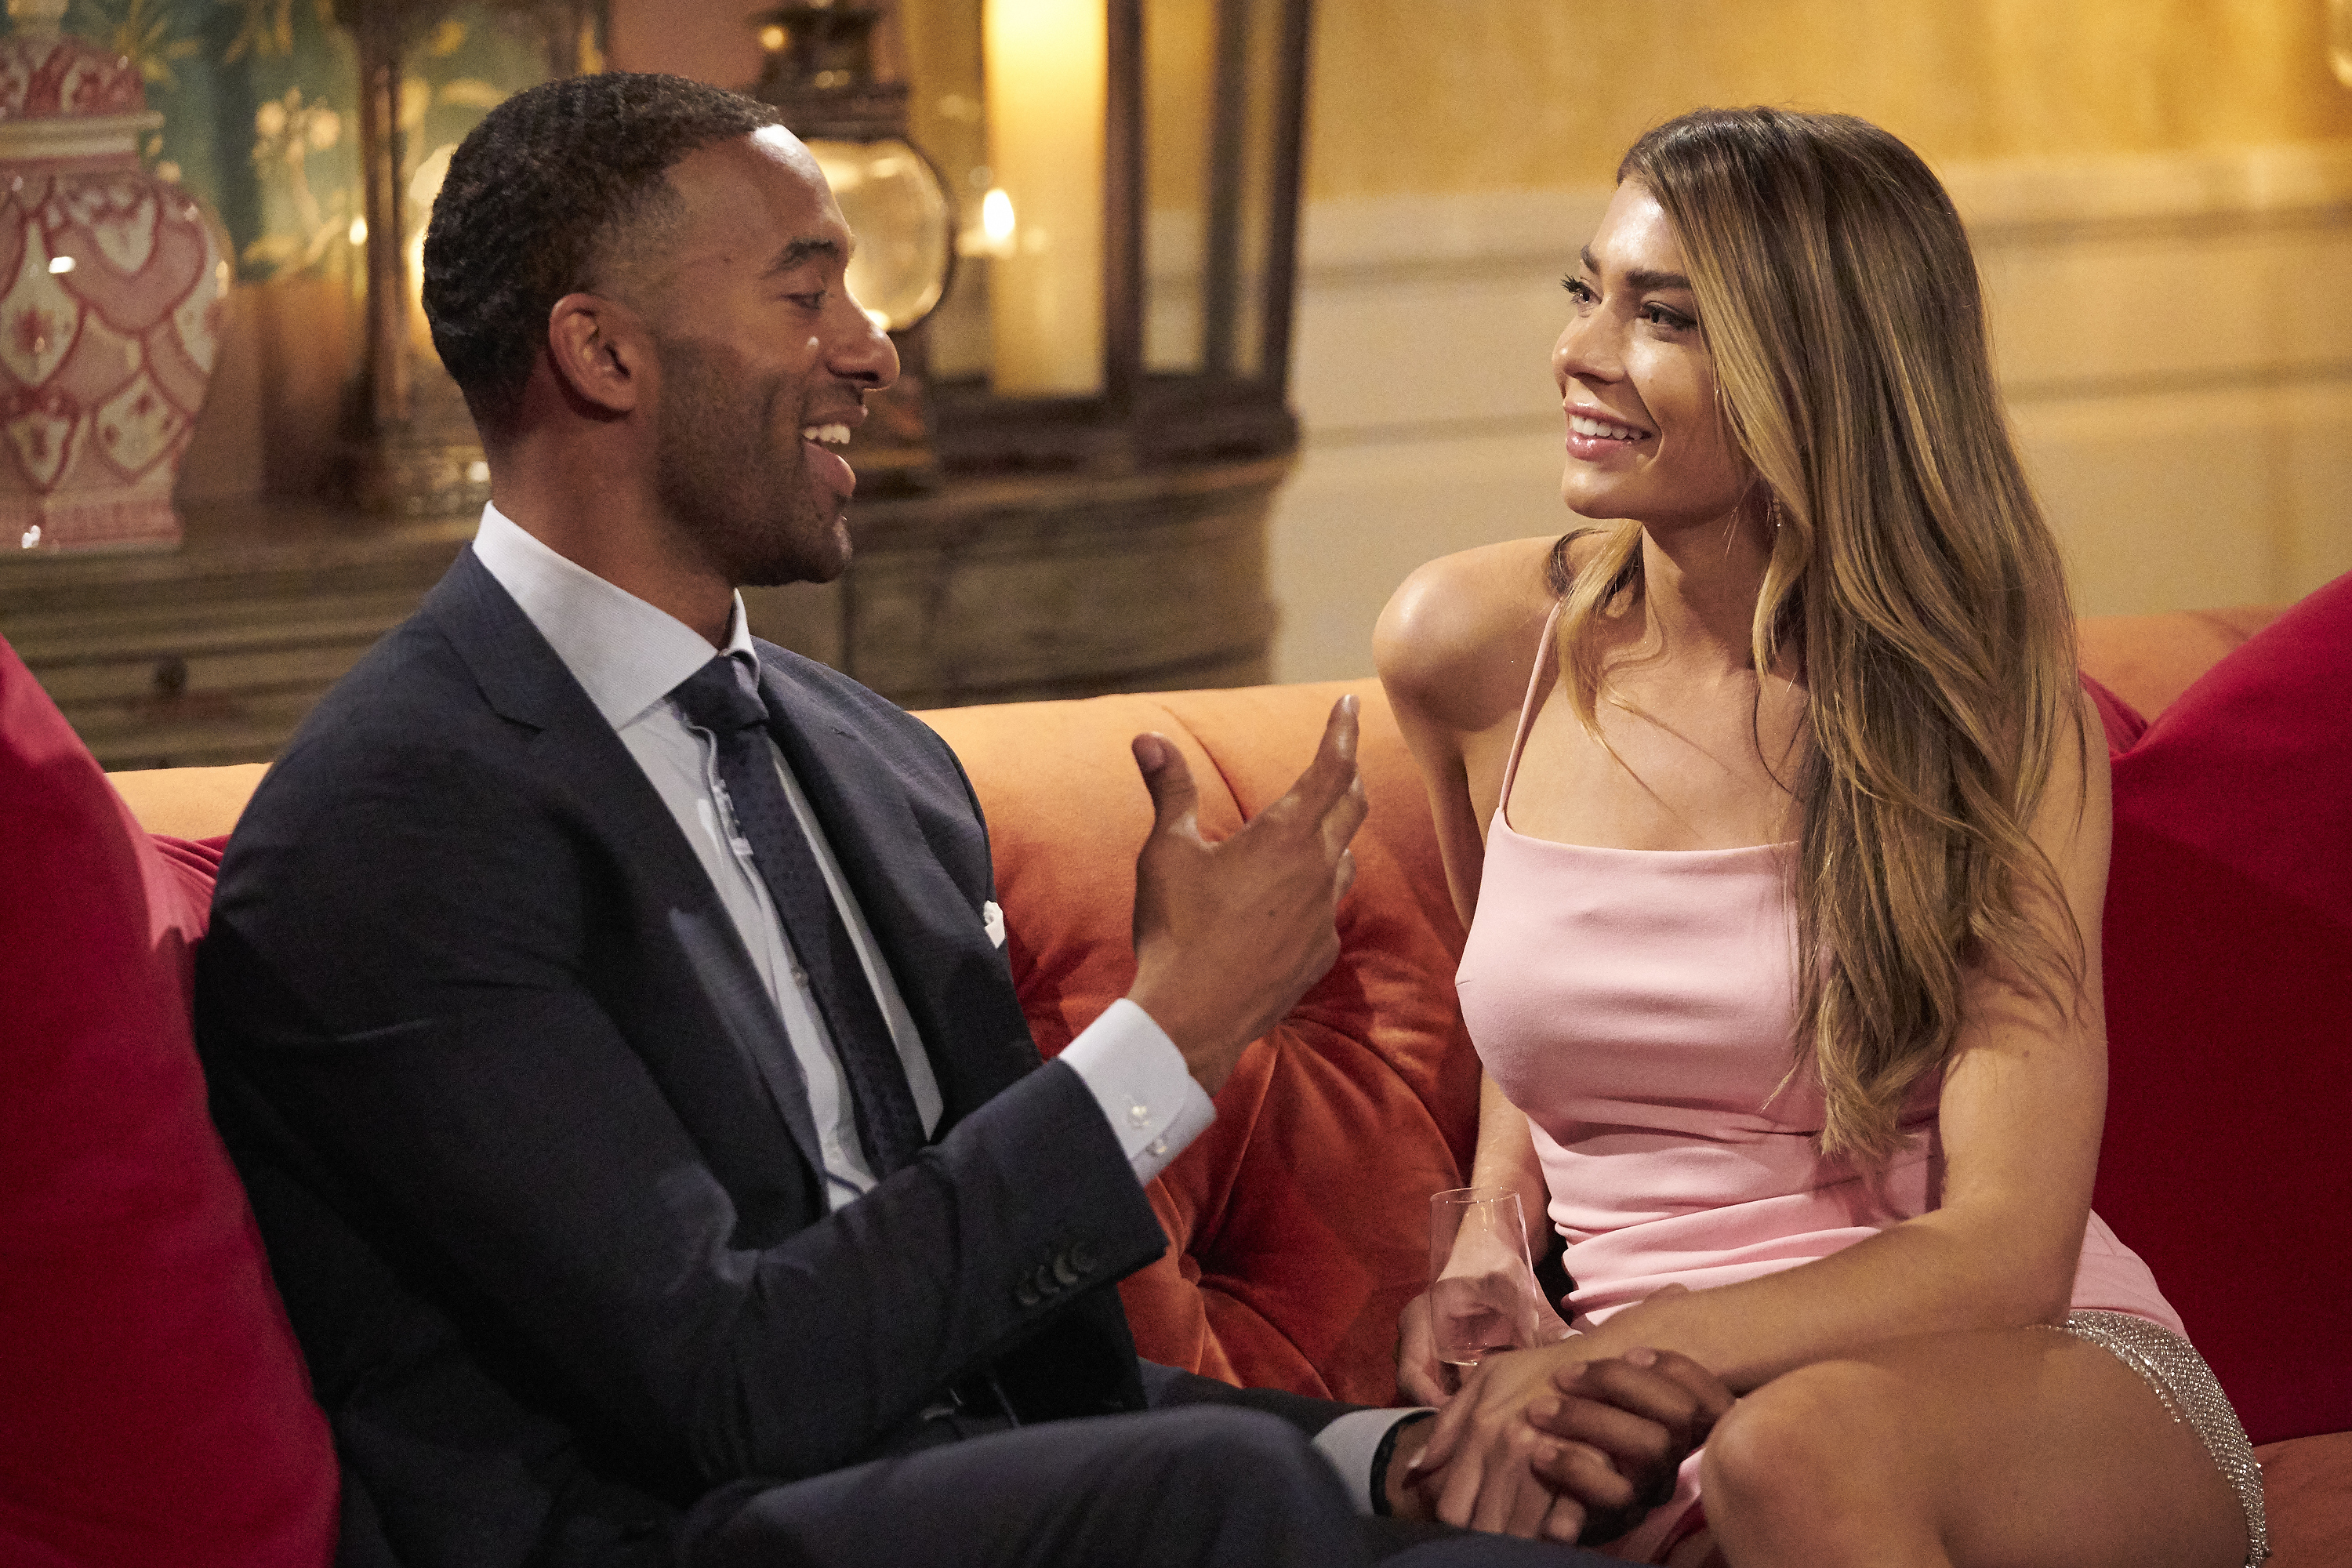 Sarah Trott Discusses Her Decision To Leave 'The Bachelor' After Dramatic Departure: 'I Don't Have Any Regrets'